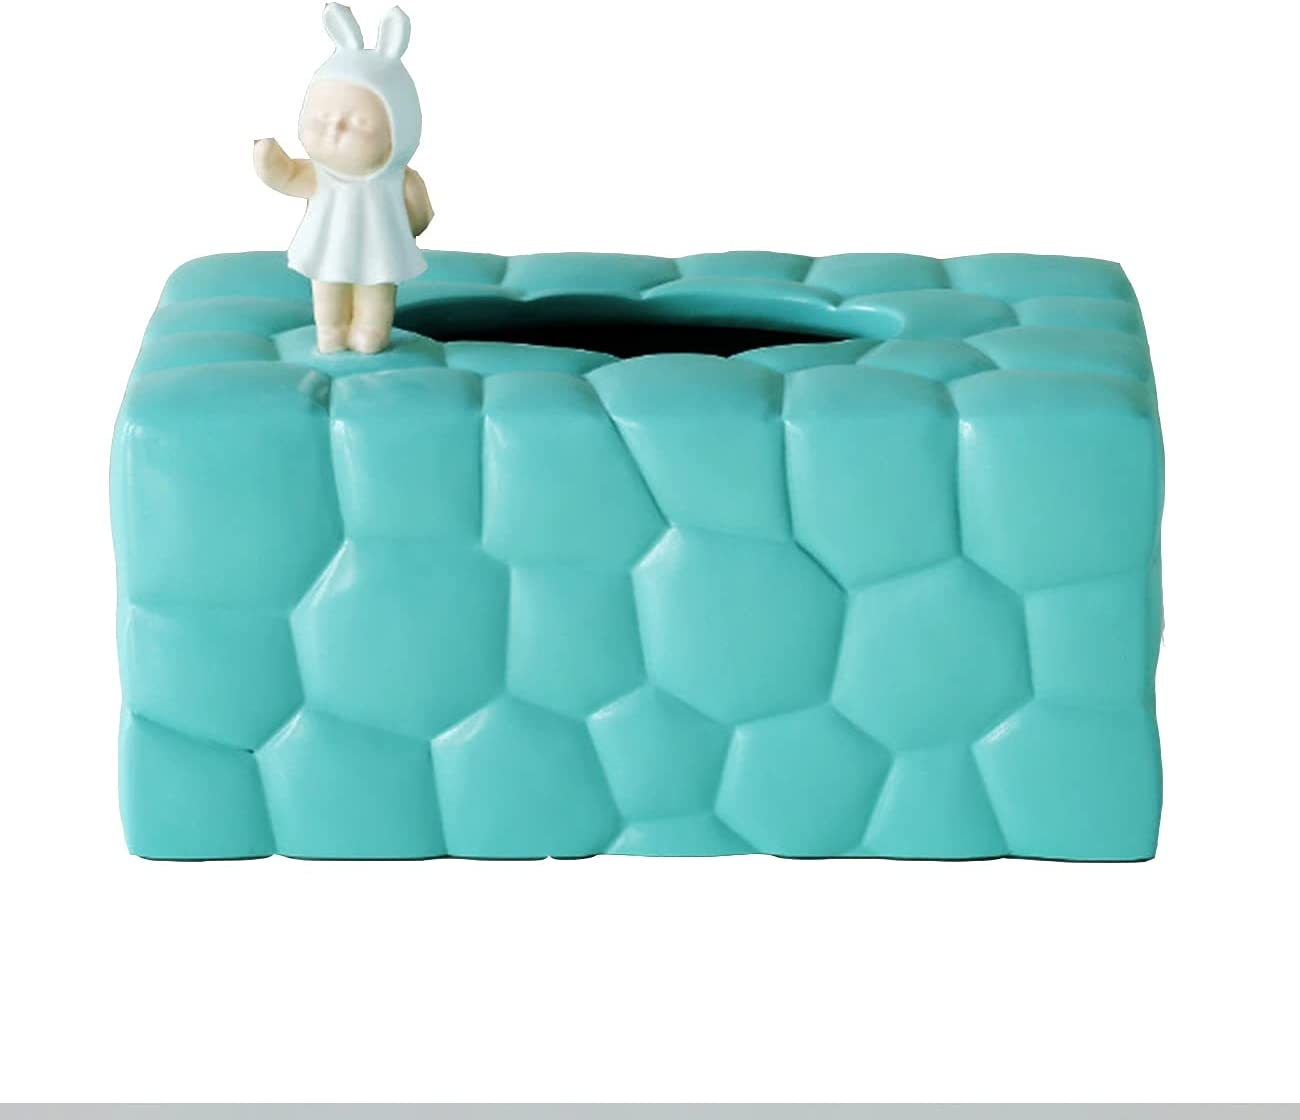 Creative Tissue Box Elf Paper Pumping 67% OFF of Outlet SALE fixed price